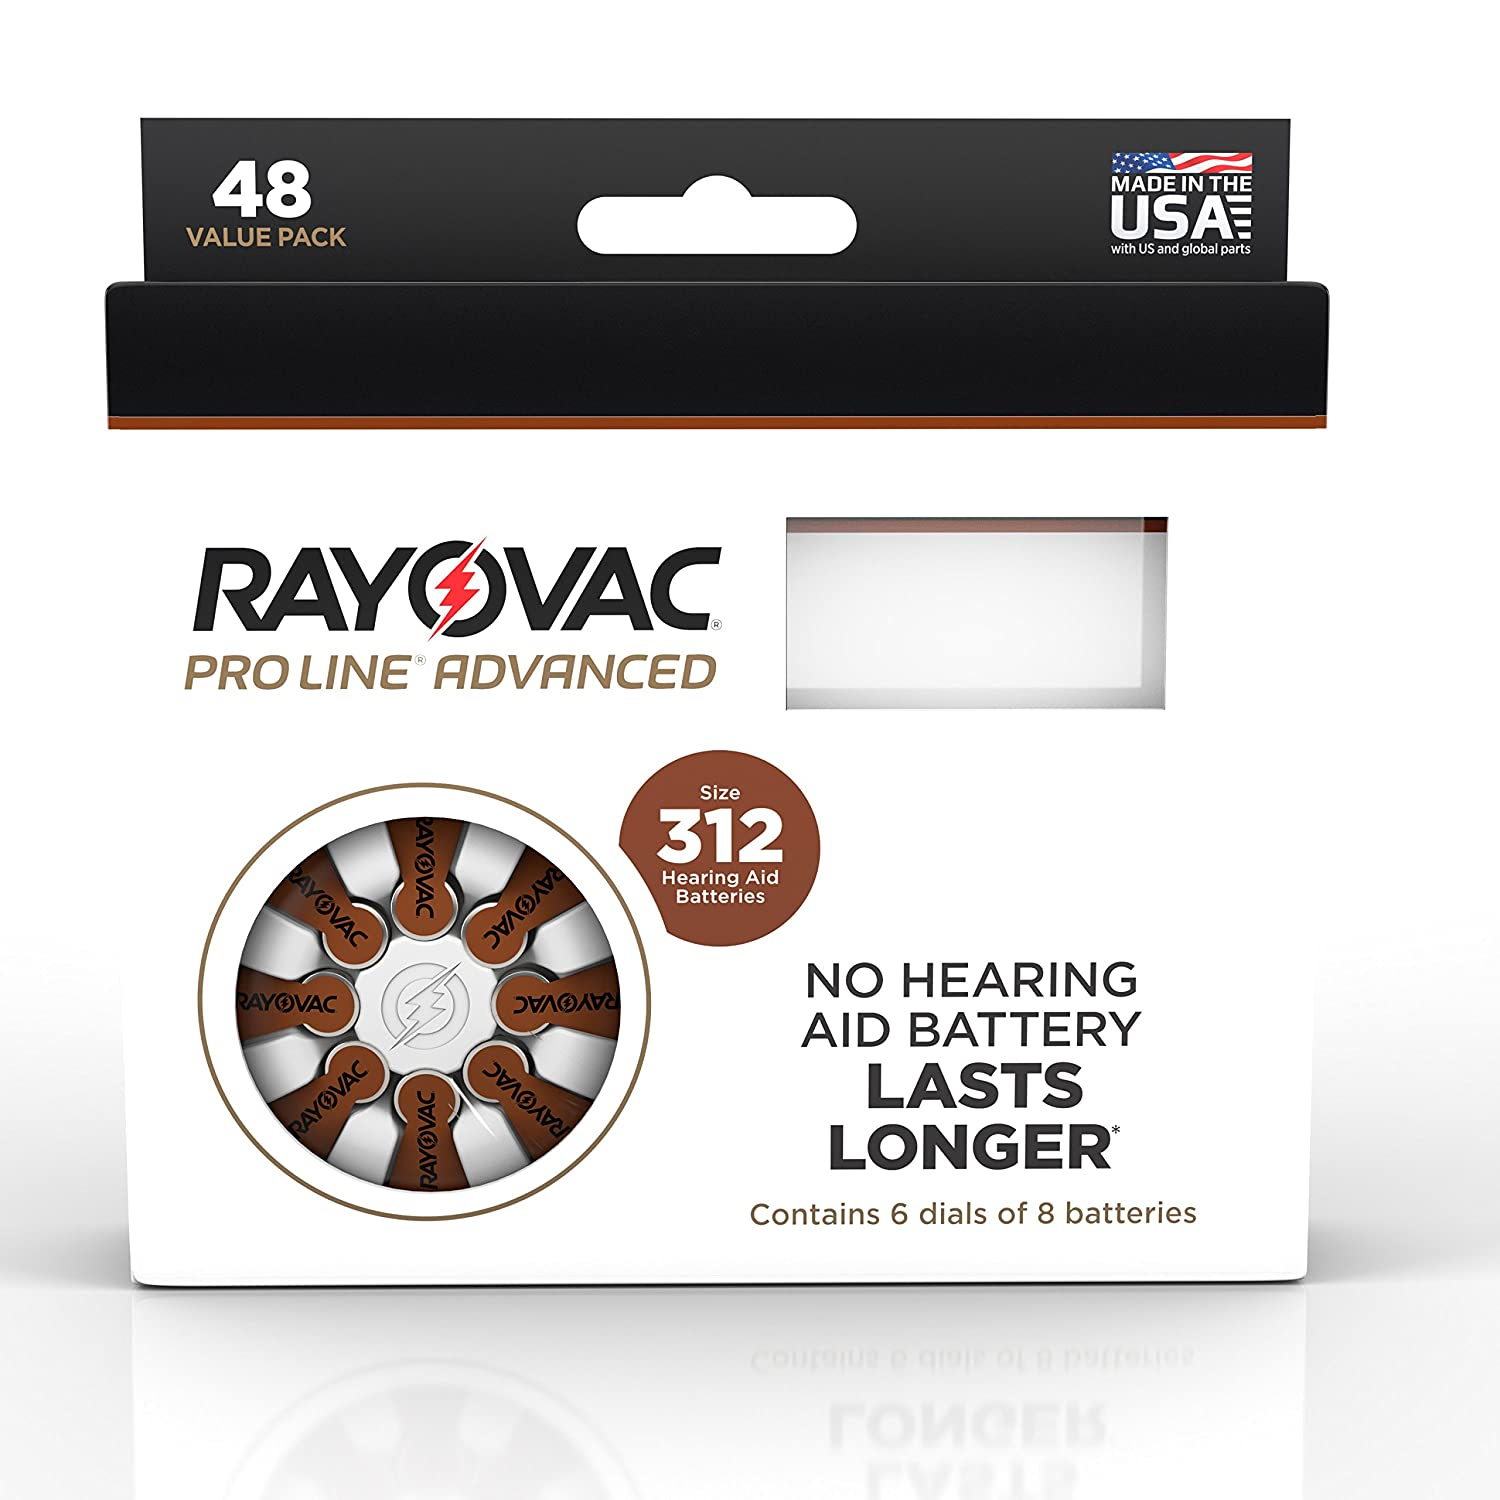 Rayovac Proline Advance Hearing Aid Batteries, Size 312 (48 count)